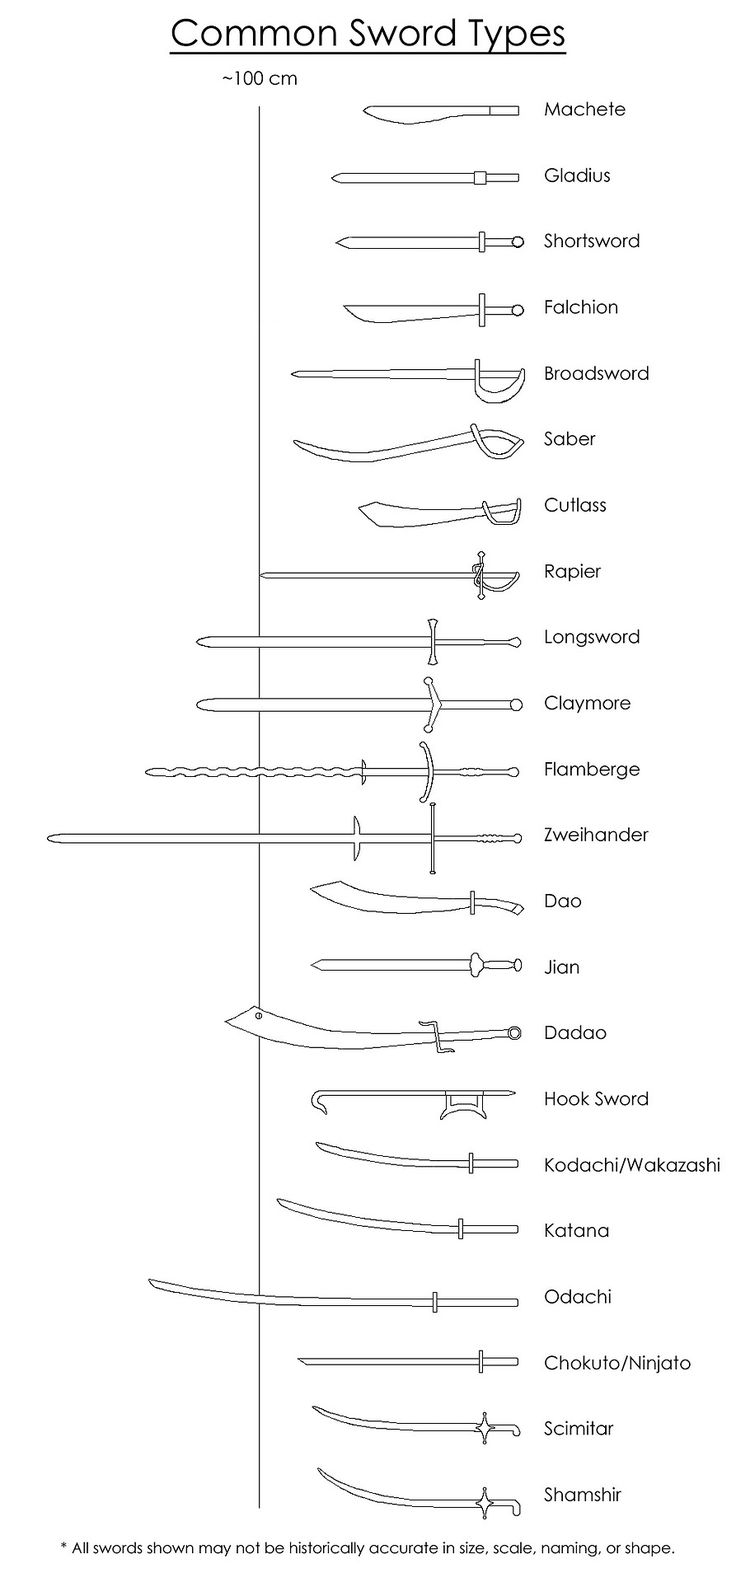 common sword types- Amazing. Do you know how wonderfully amazing this is. Pinning this to all my character boards